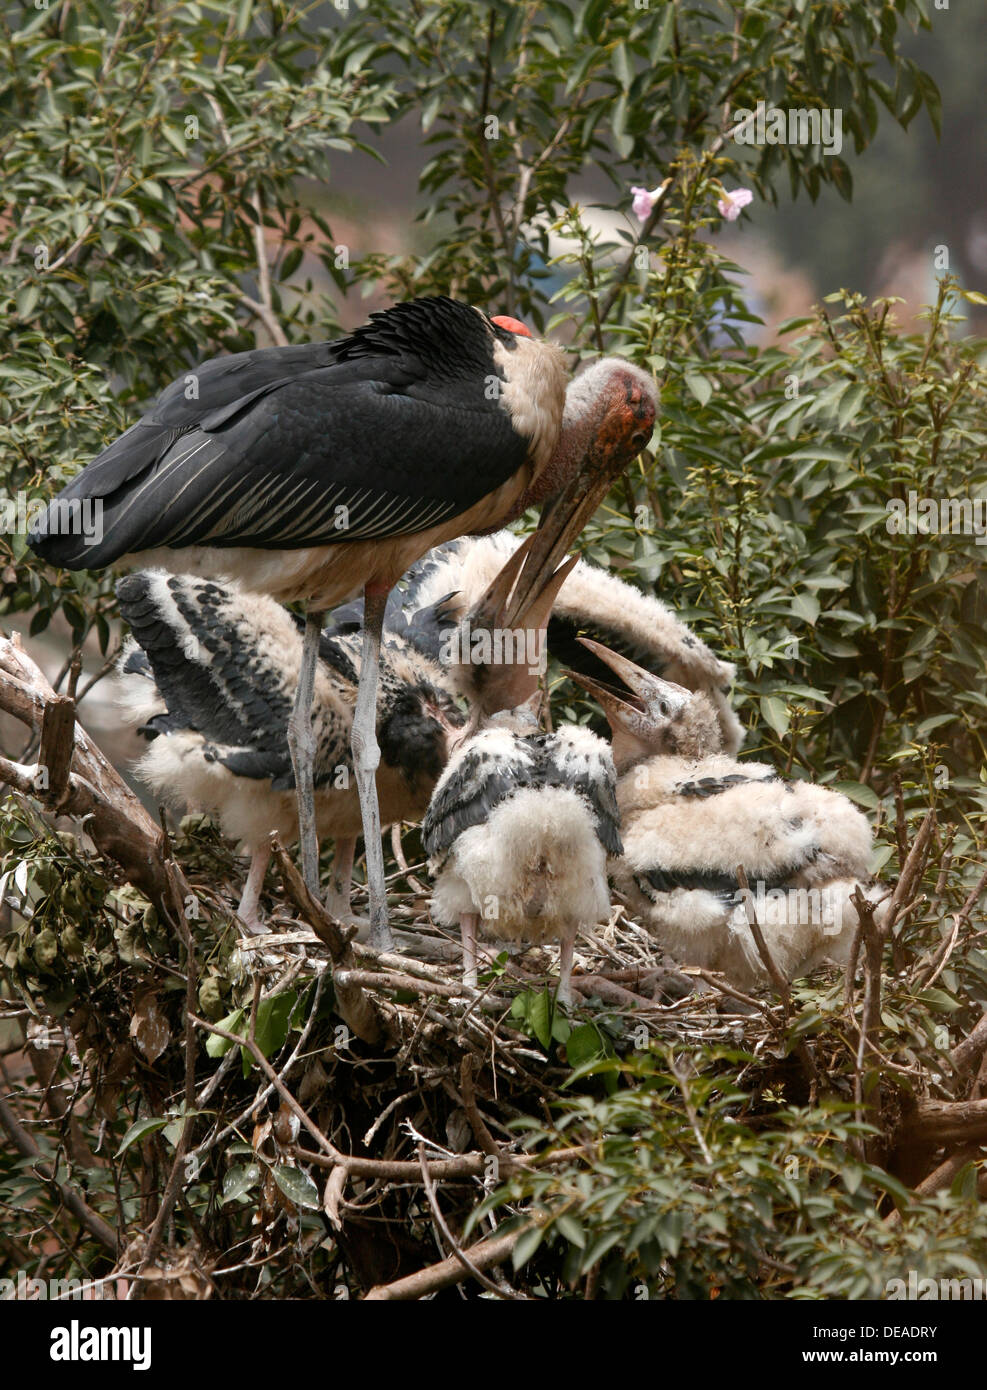 A marabou stork feeds its young in their nest. Uganda. - Stock Image